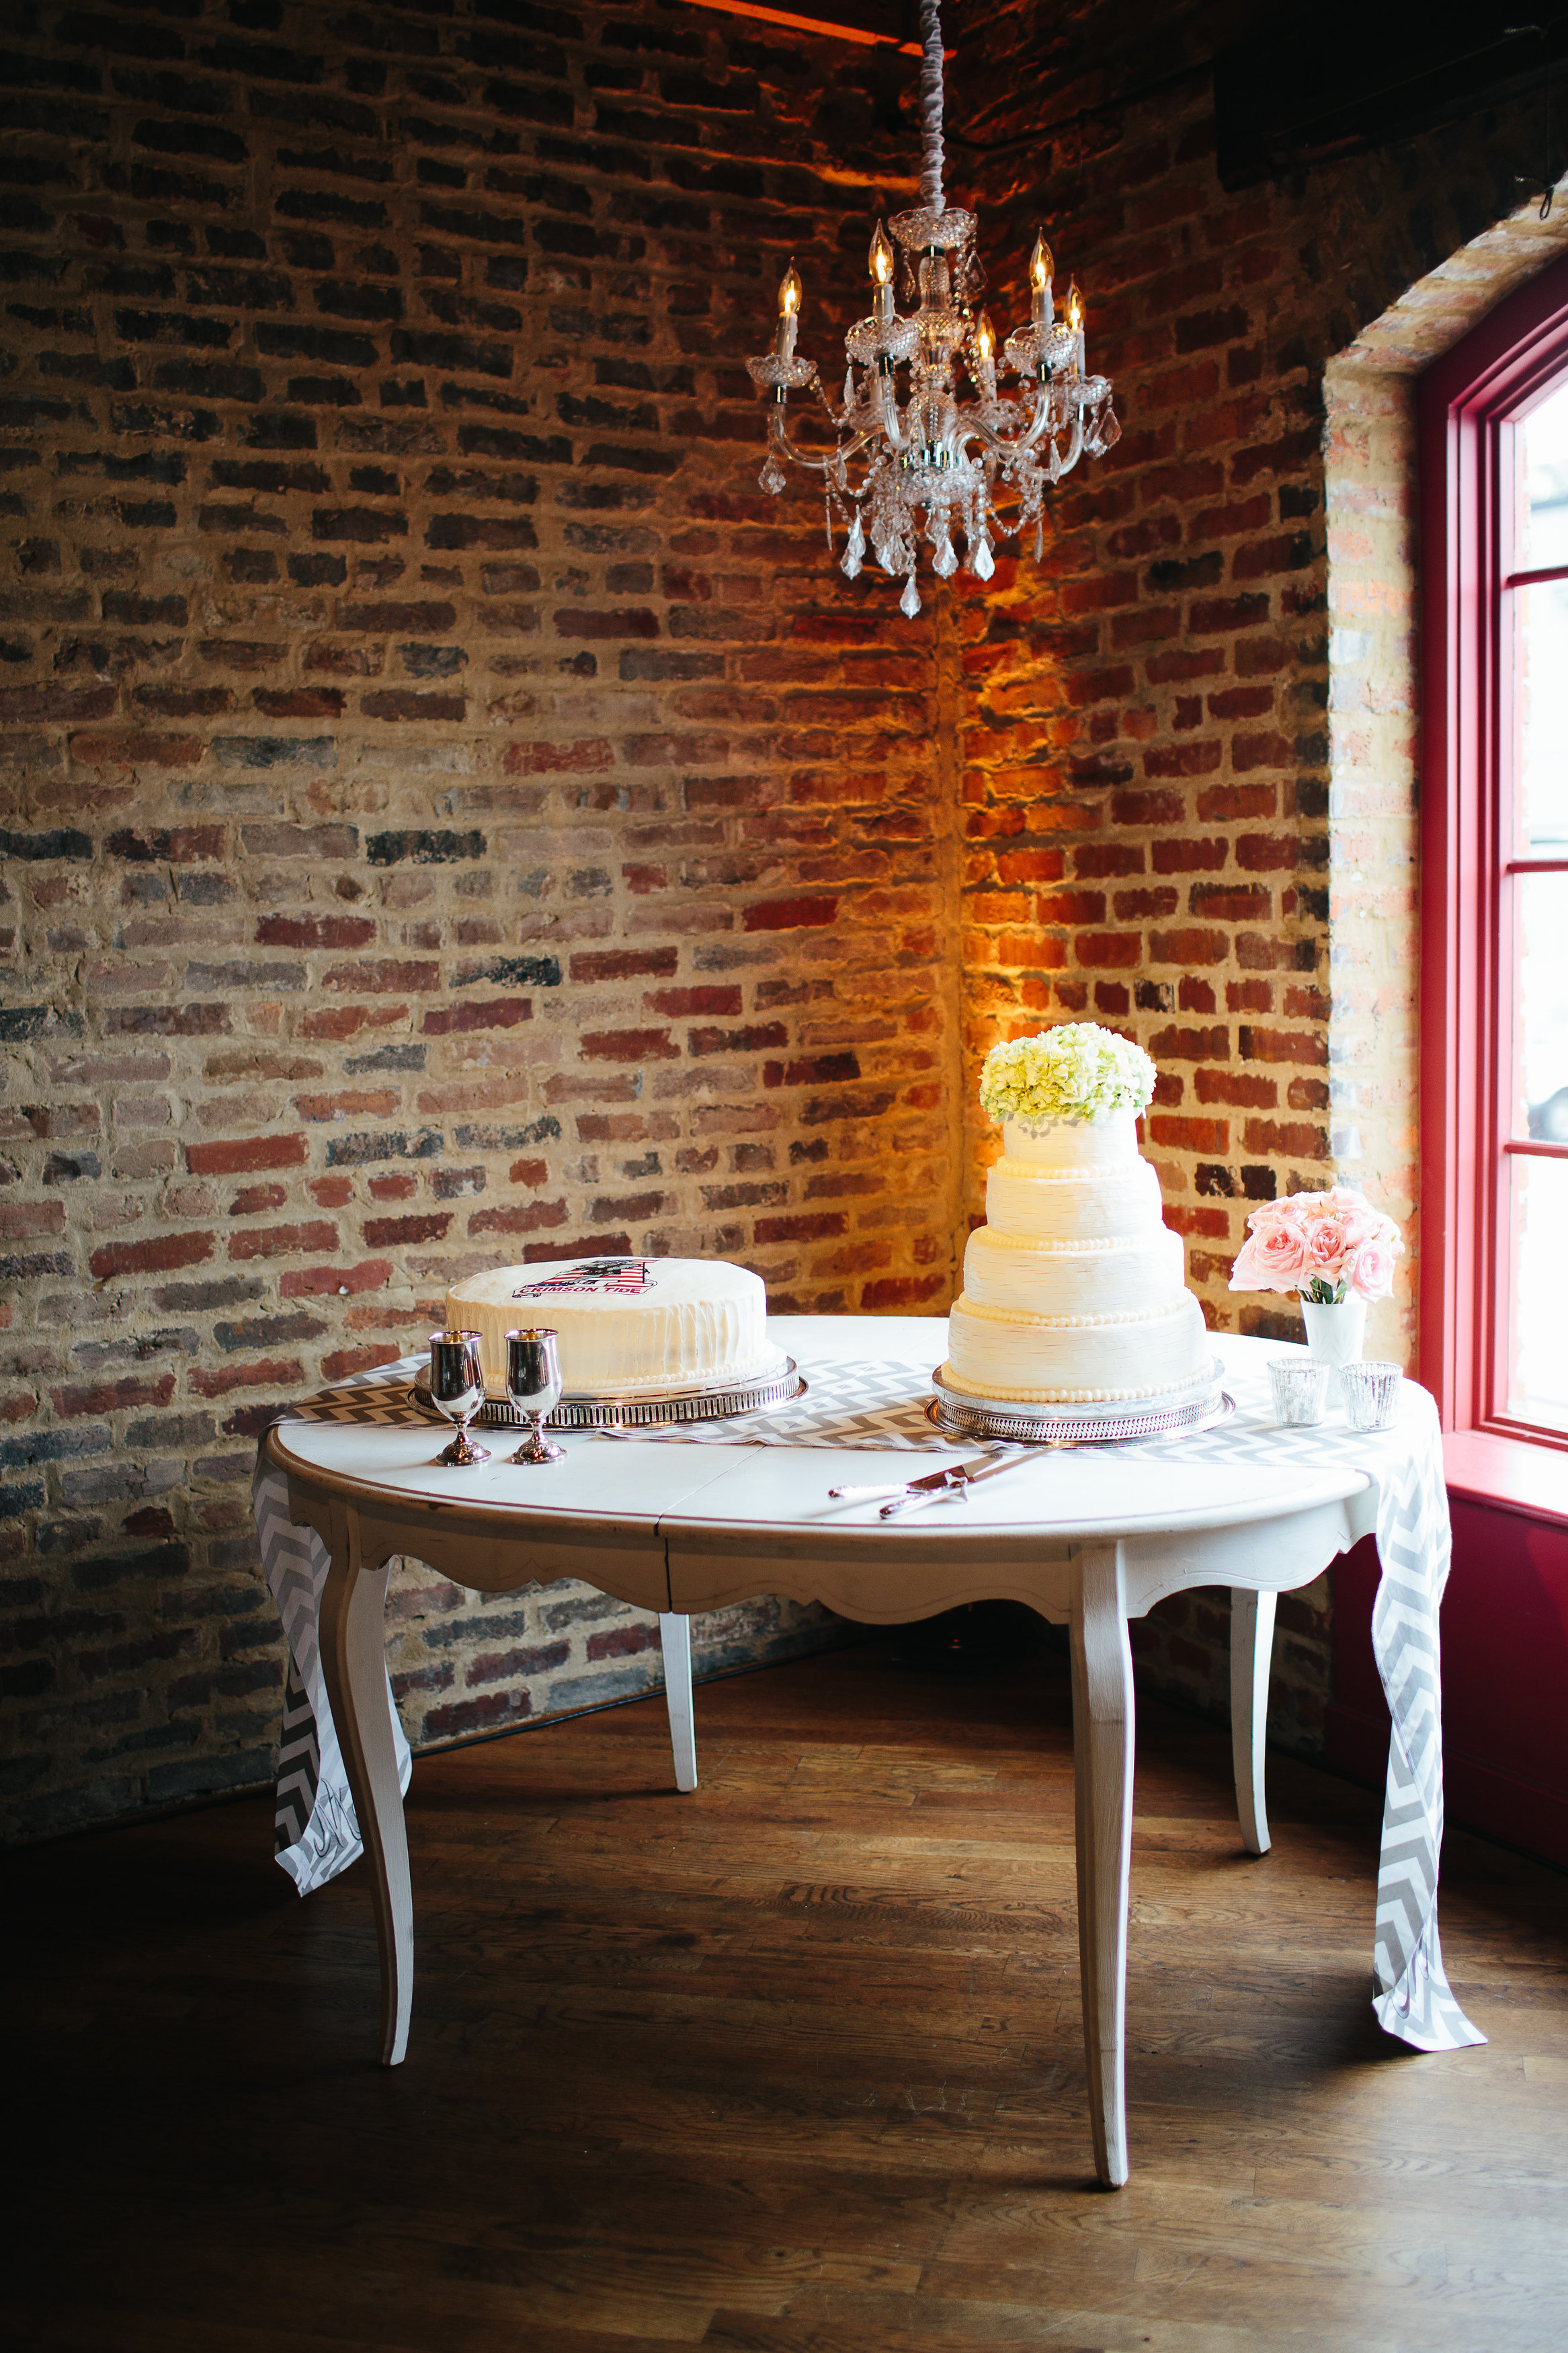 Houston_Station_Bright_Event_Productions_Nashville_Southern_Events_Simply_Yours_Weddings_Kay_Mc_Confections.JPG